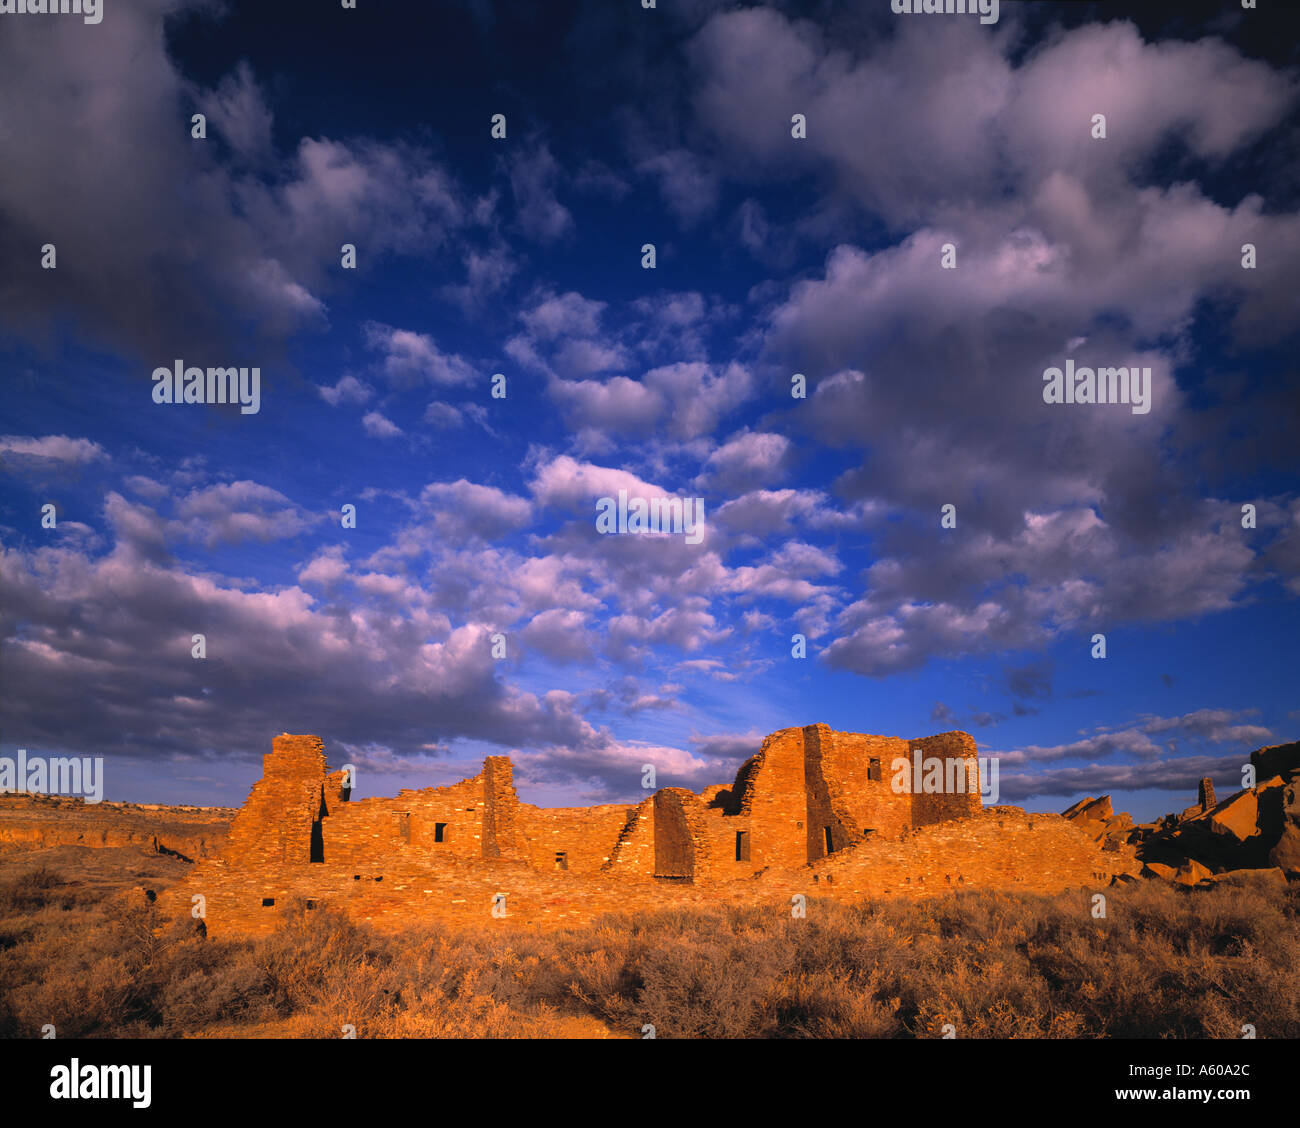 Morning Clouds Pueblo Bonito Chaco Culture National Historic Park New Mexico - Stock Image